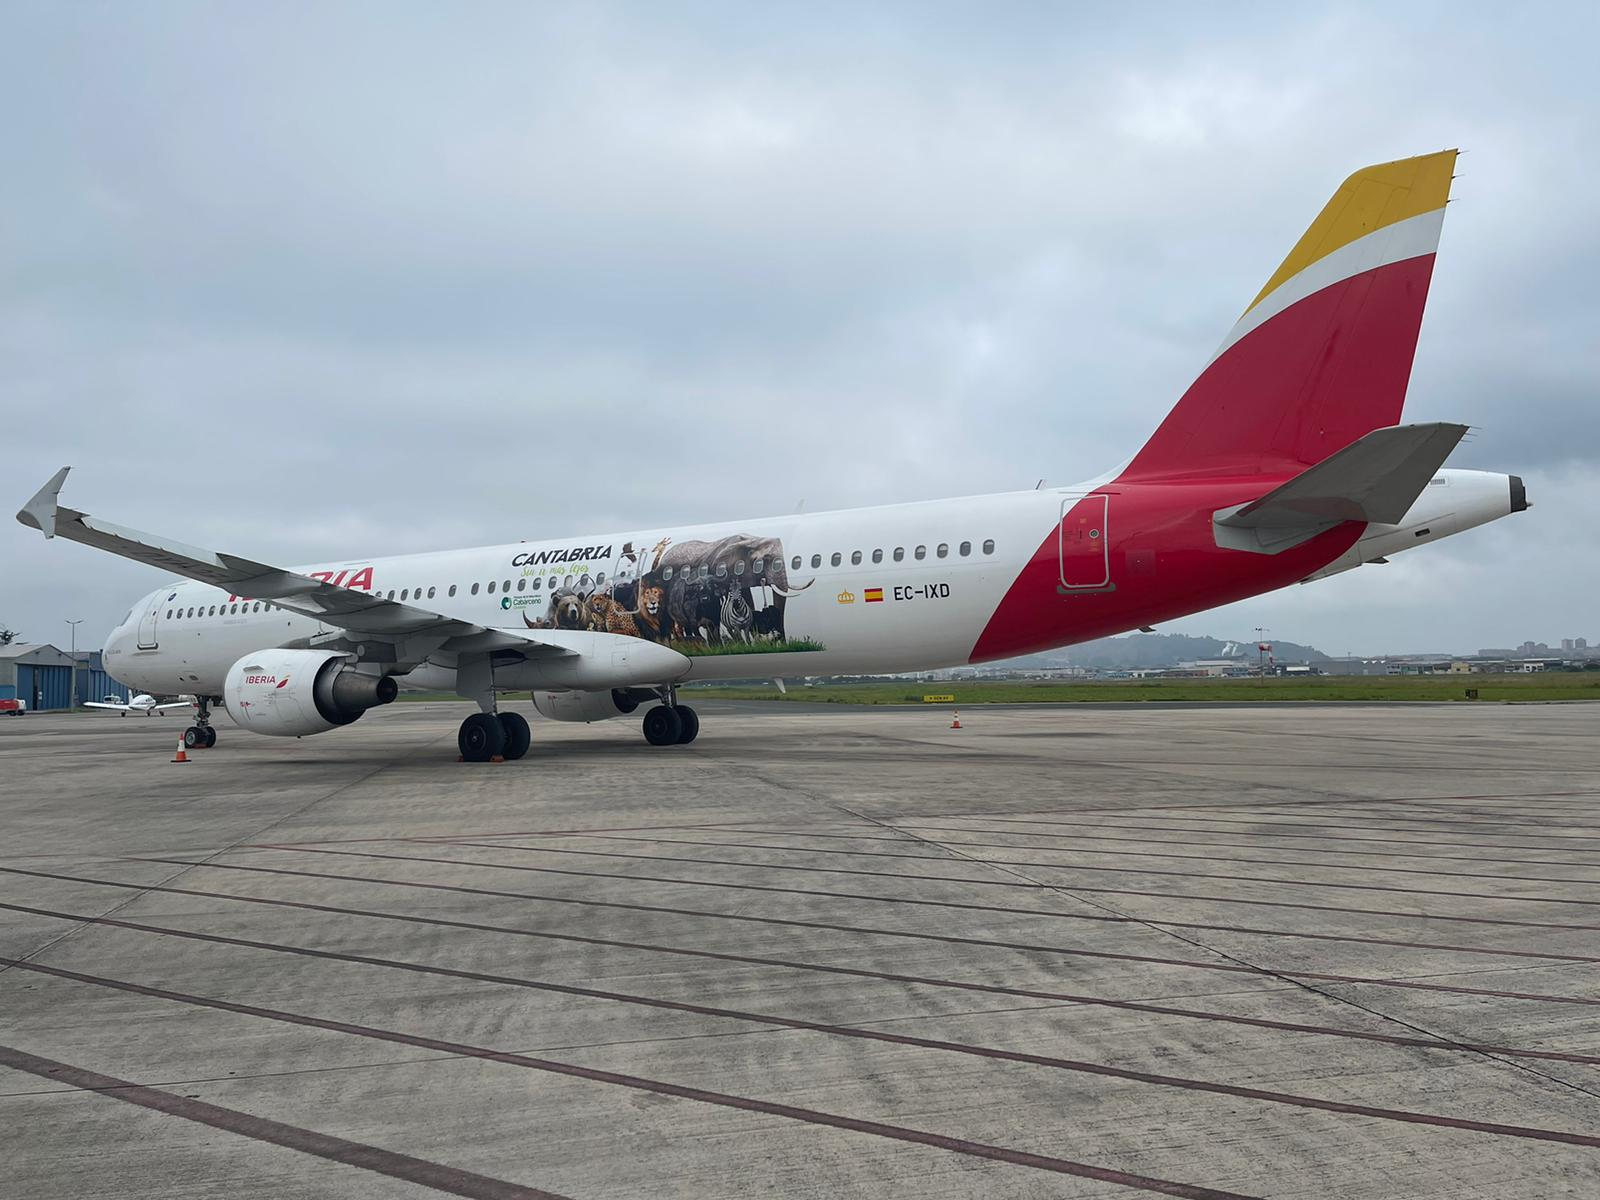 Iberia Launches New Livery To Promote Northern Spain